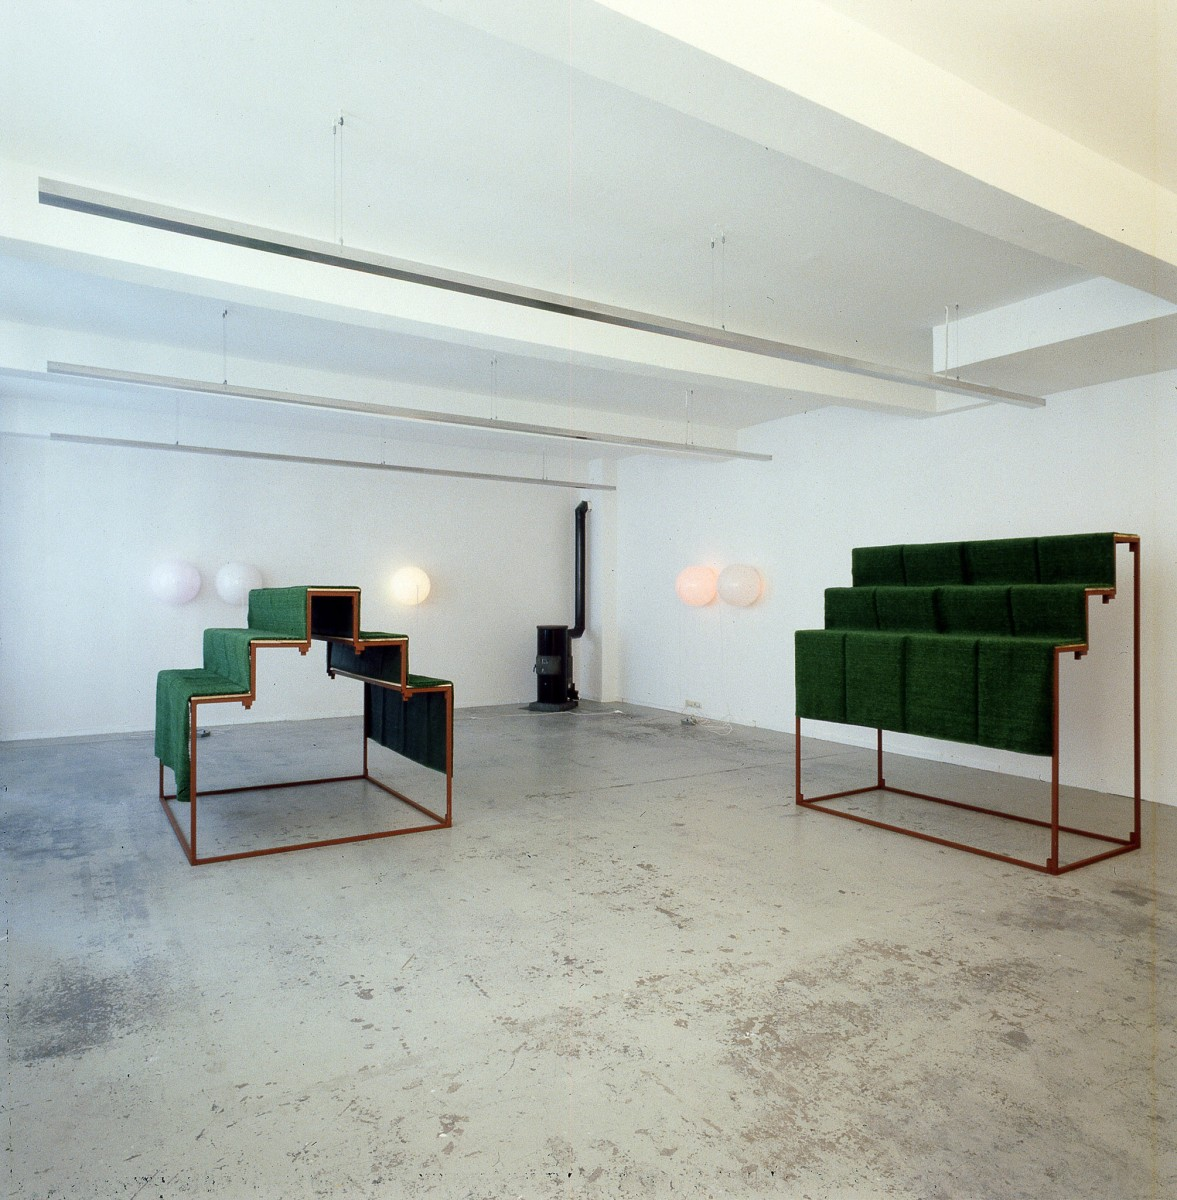 Exhibition view: Angela Bulloch, Gary Hume, Michael Landy, Esther Schipper, Cologne, 1989. Photo © Lothar Schnepf